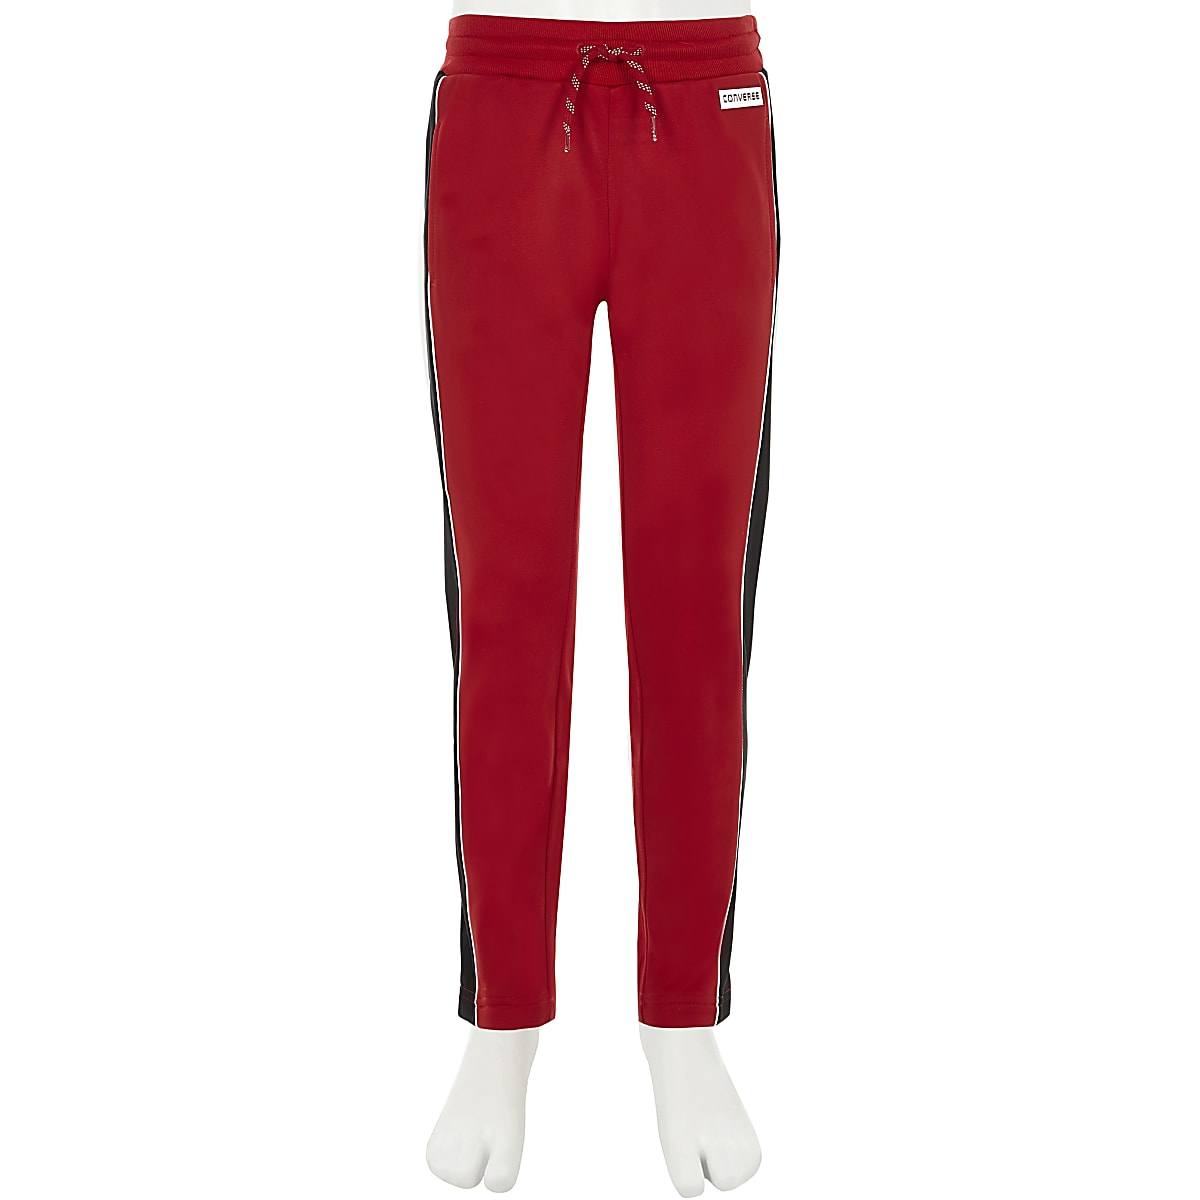 95a8cc9189fd Girls Converse red straight leg joggers - Joggers - Trousers - girls